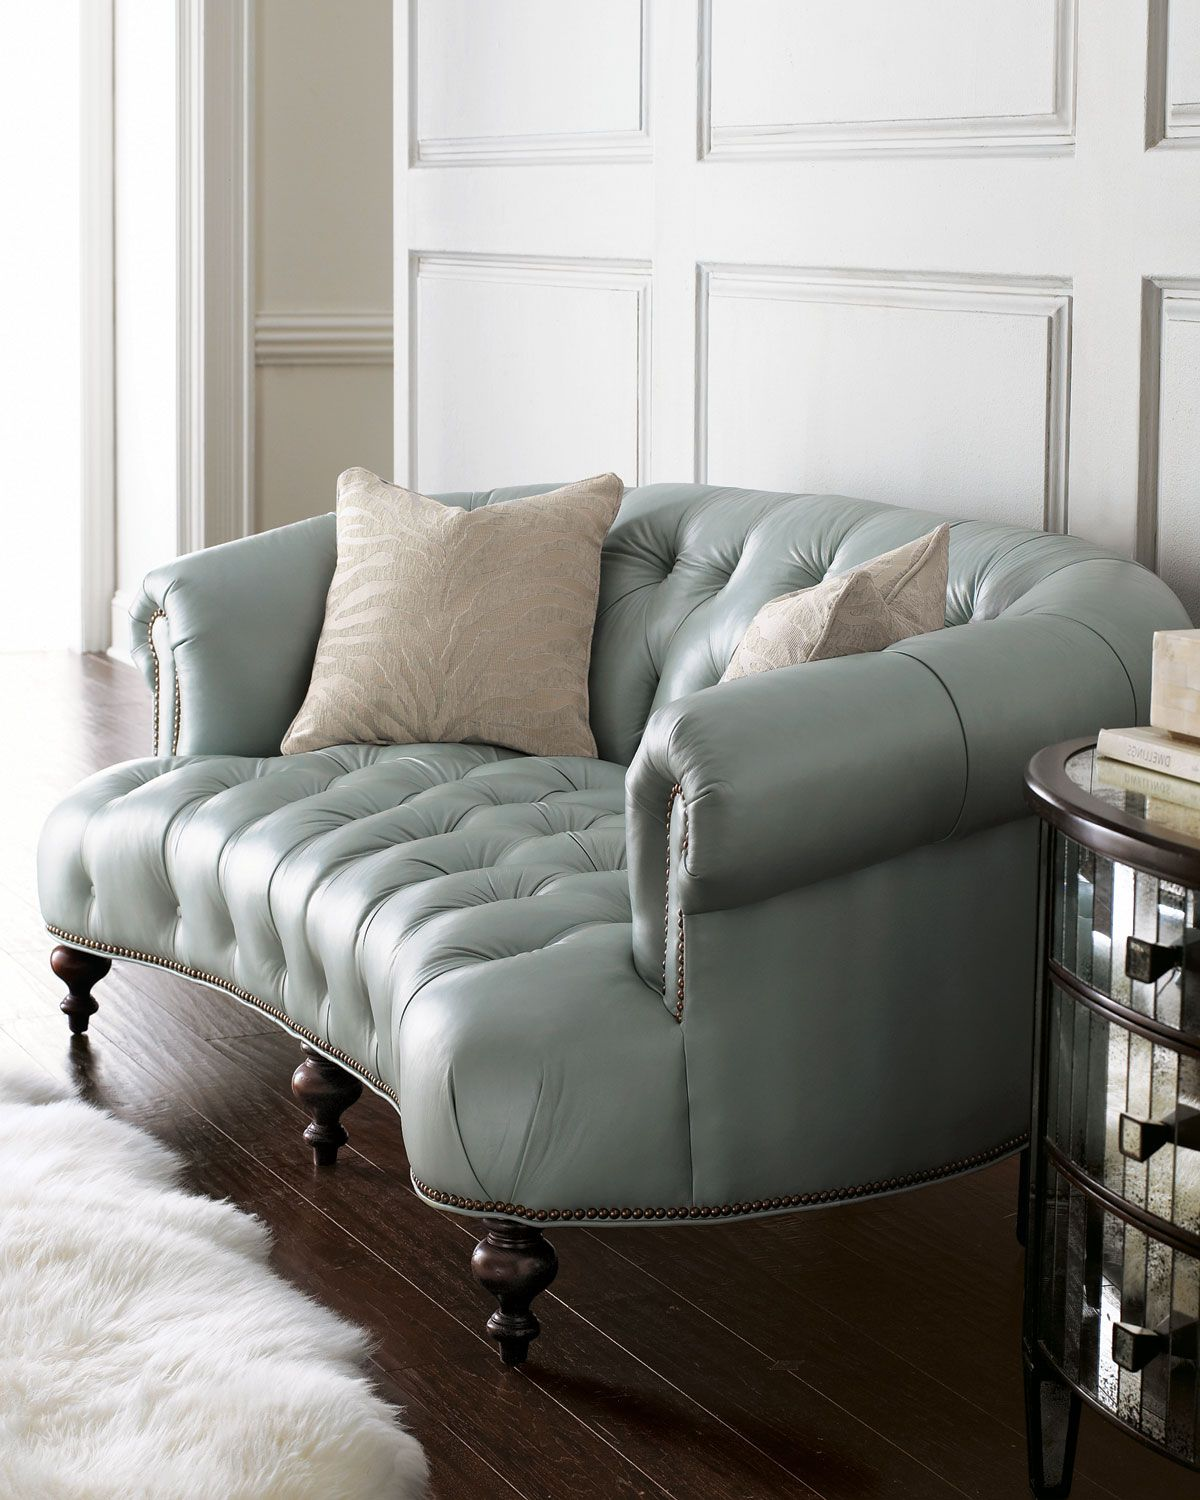 Harlow Cuddle Chair Cypress Adirondack Chairs Lovely Unusual Bank Breaking Sofa Blue And Brown